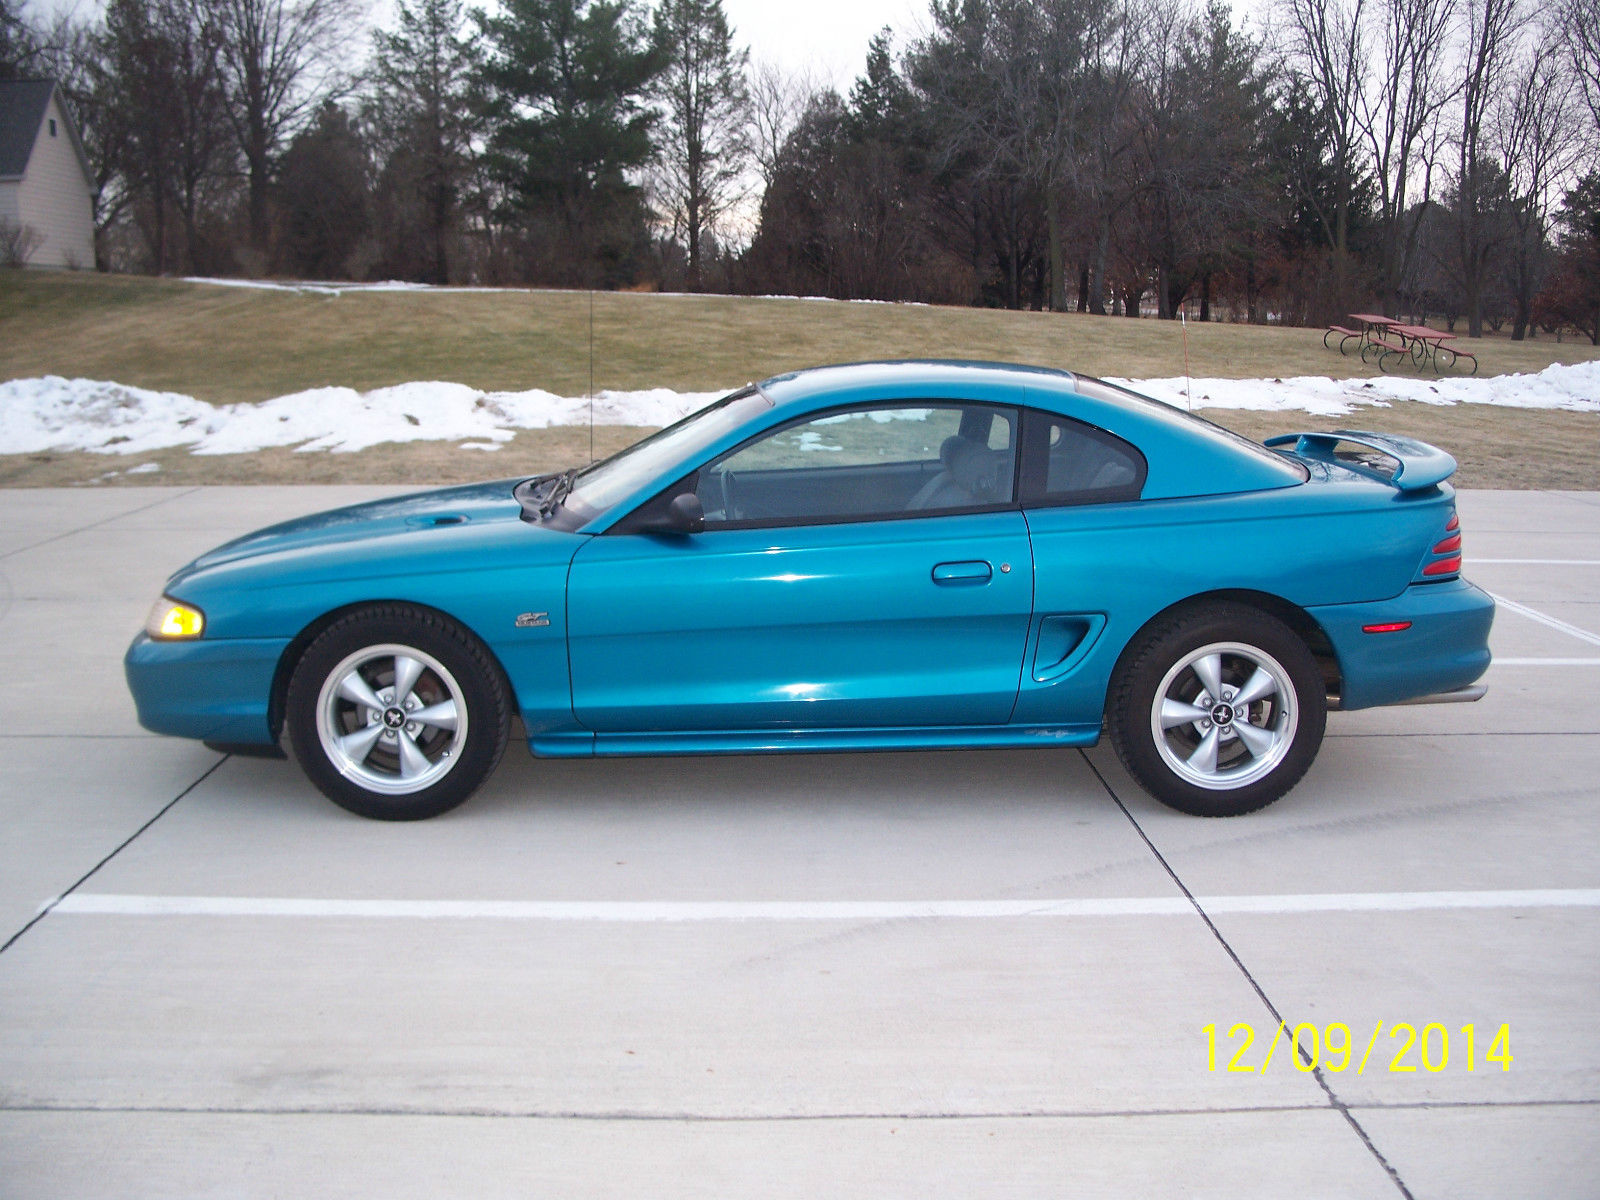 1994 ford mustang gt in rare teal classic ford mustang. Black Bedroom Furniture Sets. Home Design Ideas